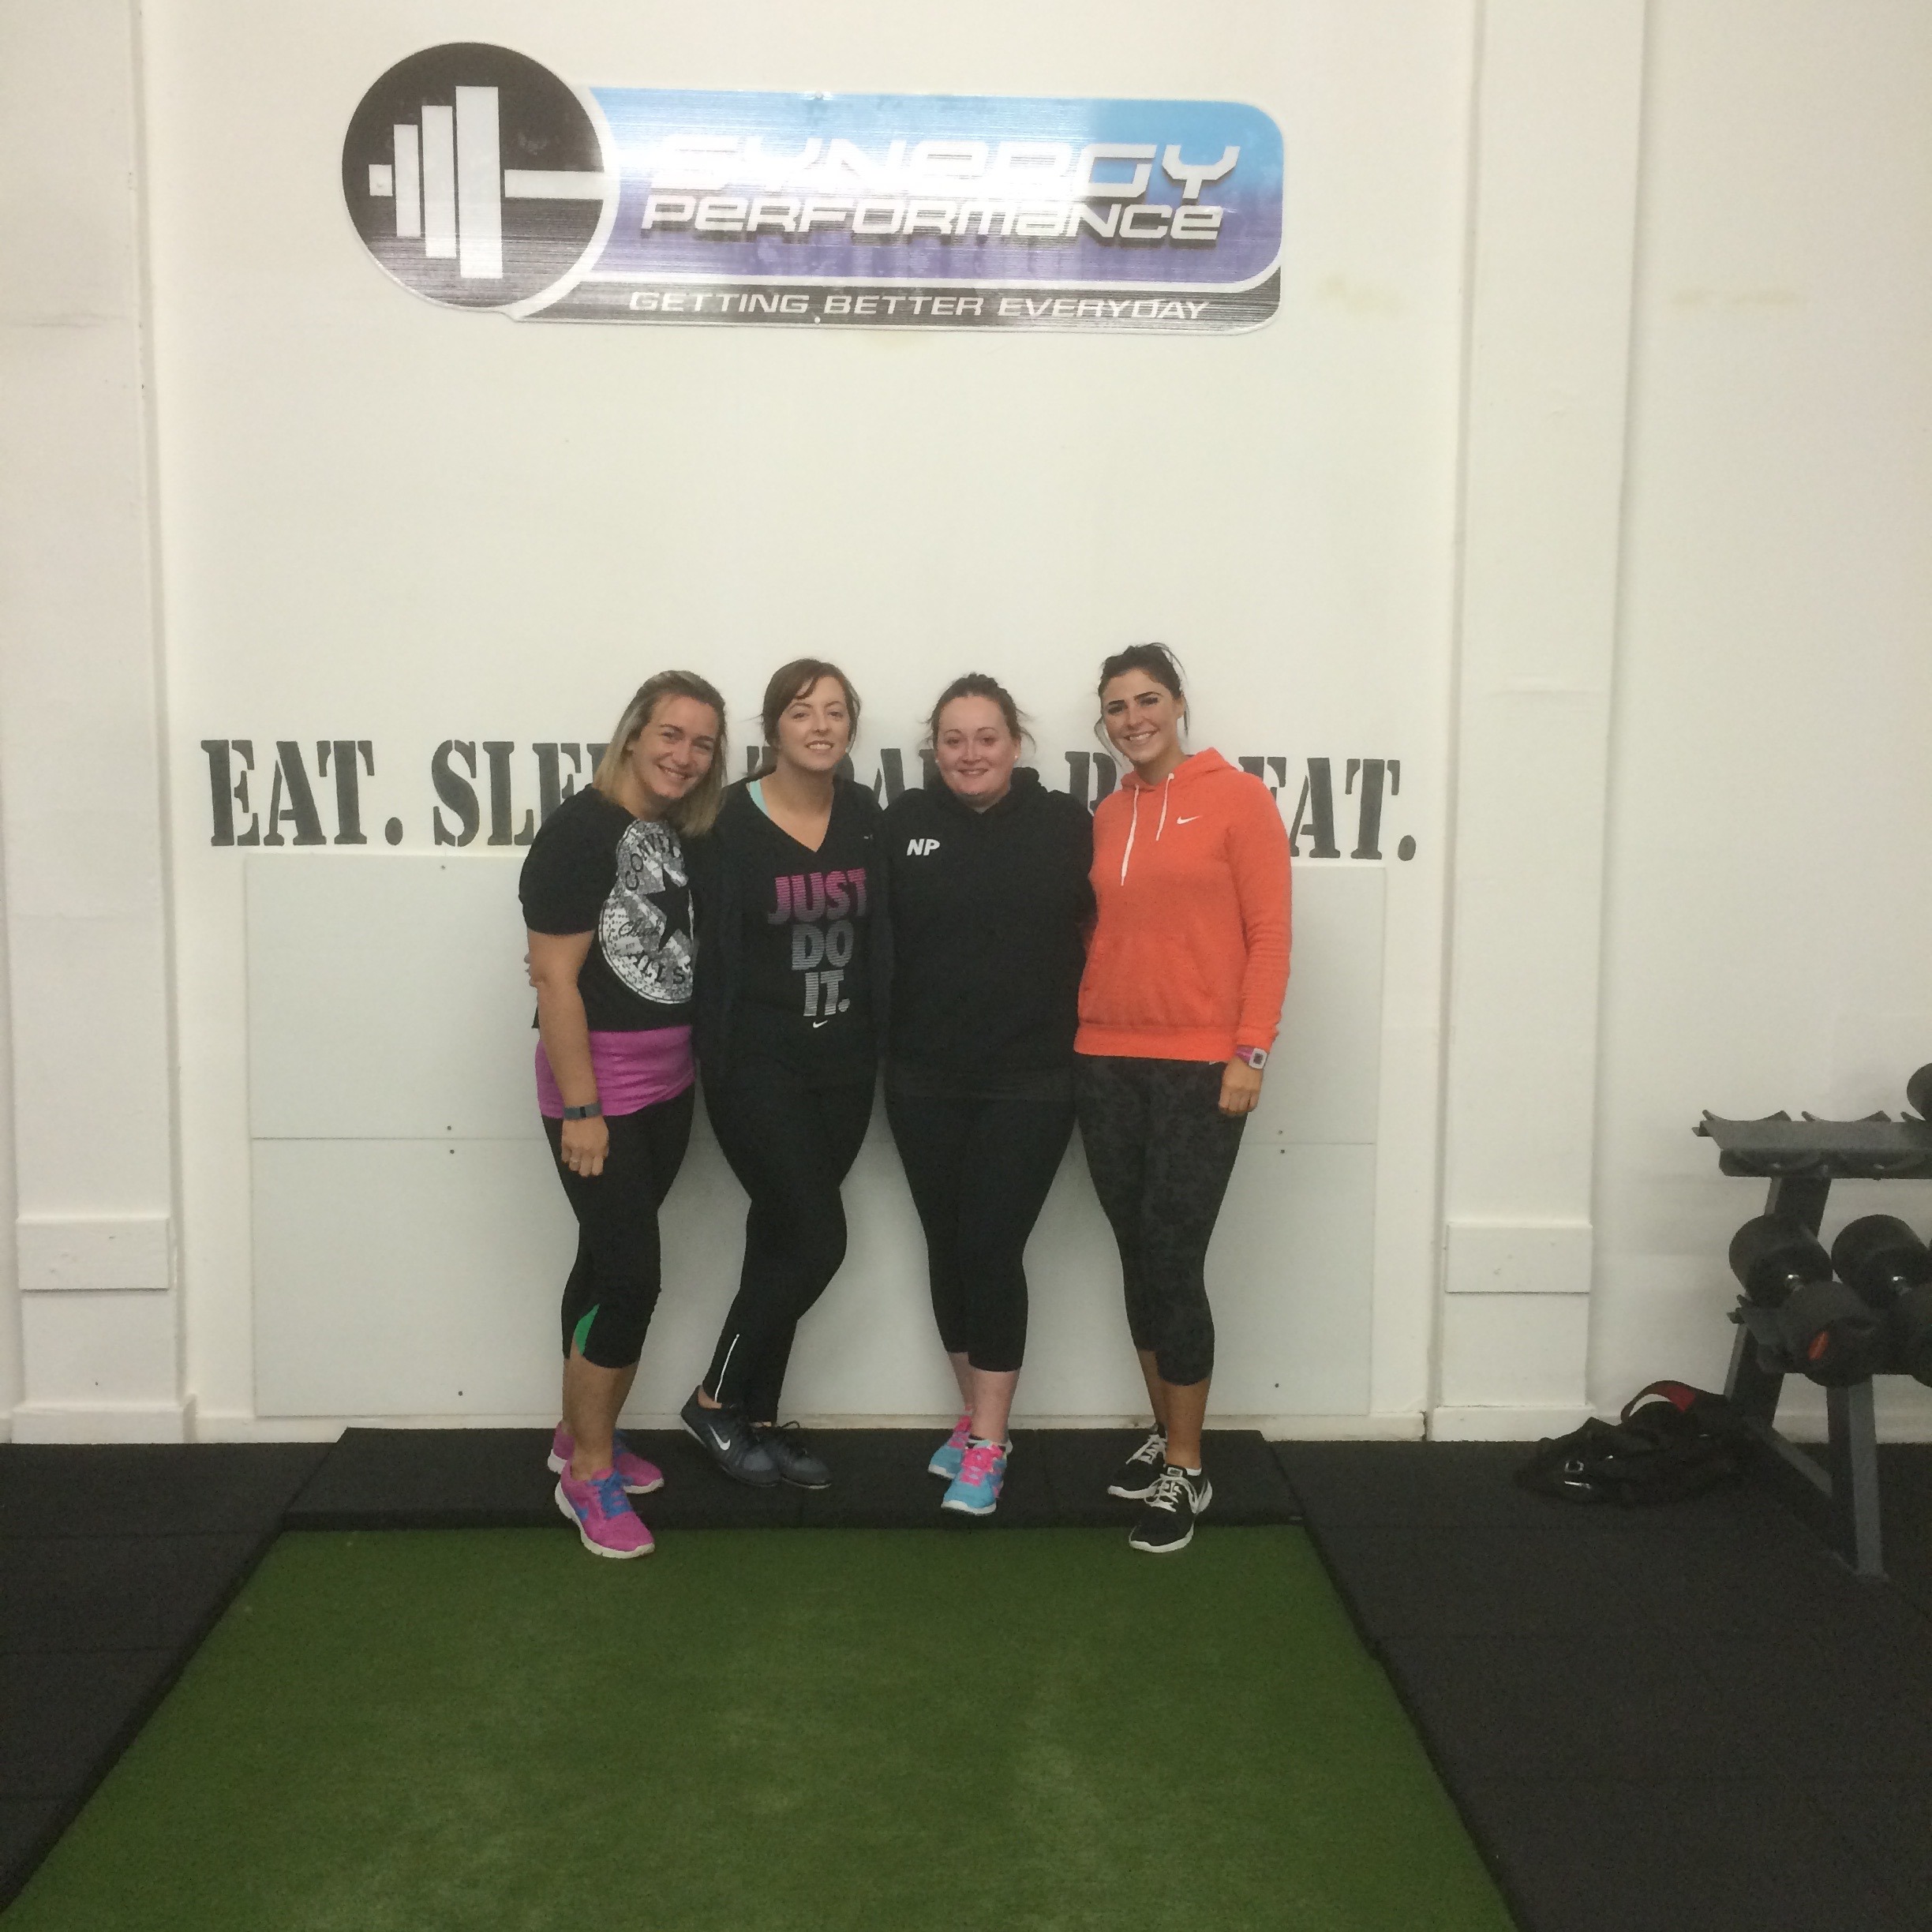 Dumfries Based Gym and Personal Training